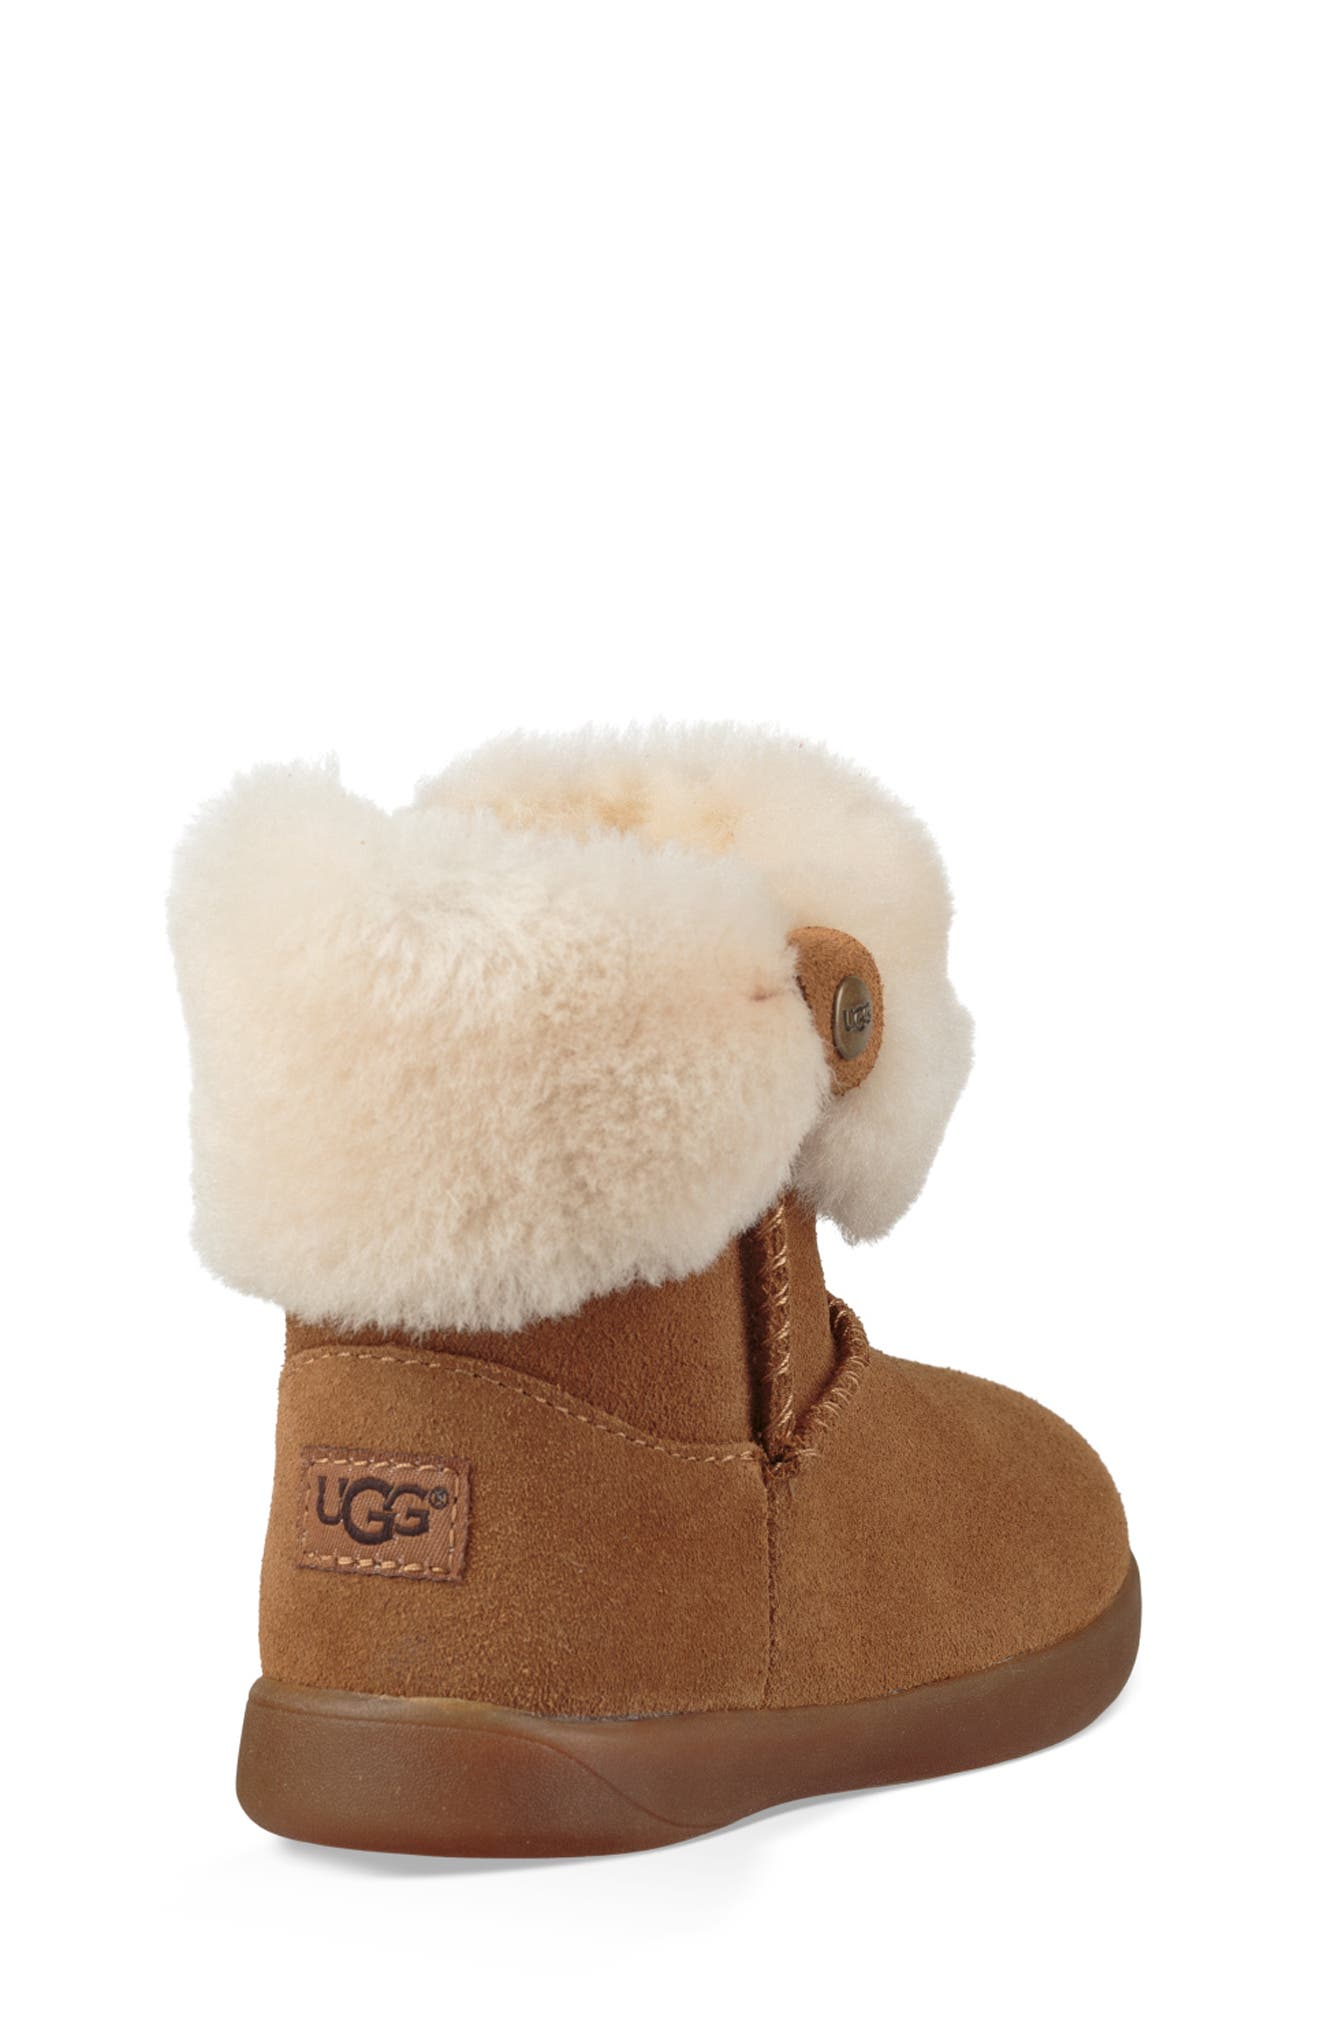 UGG<SUP>®</SUP>, Ramona Classic Short Boot, Alternate thumbnail 2, color, CHESTNUT